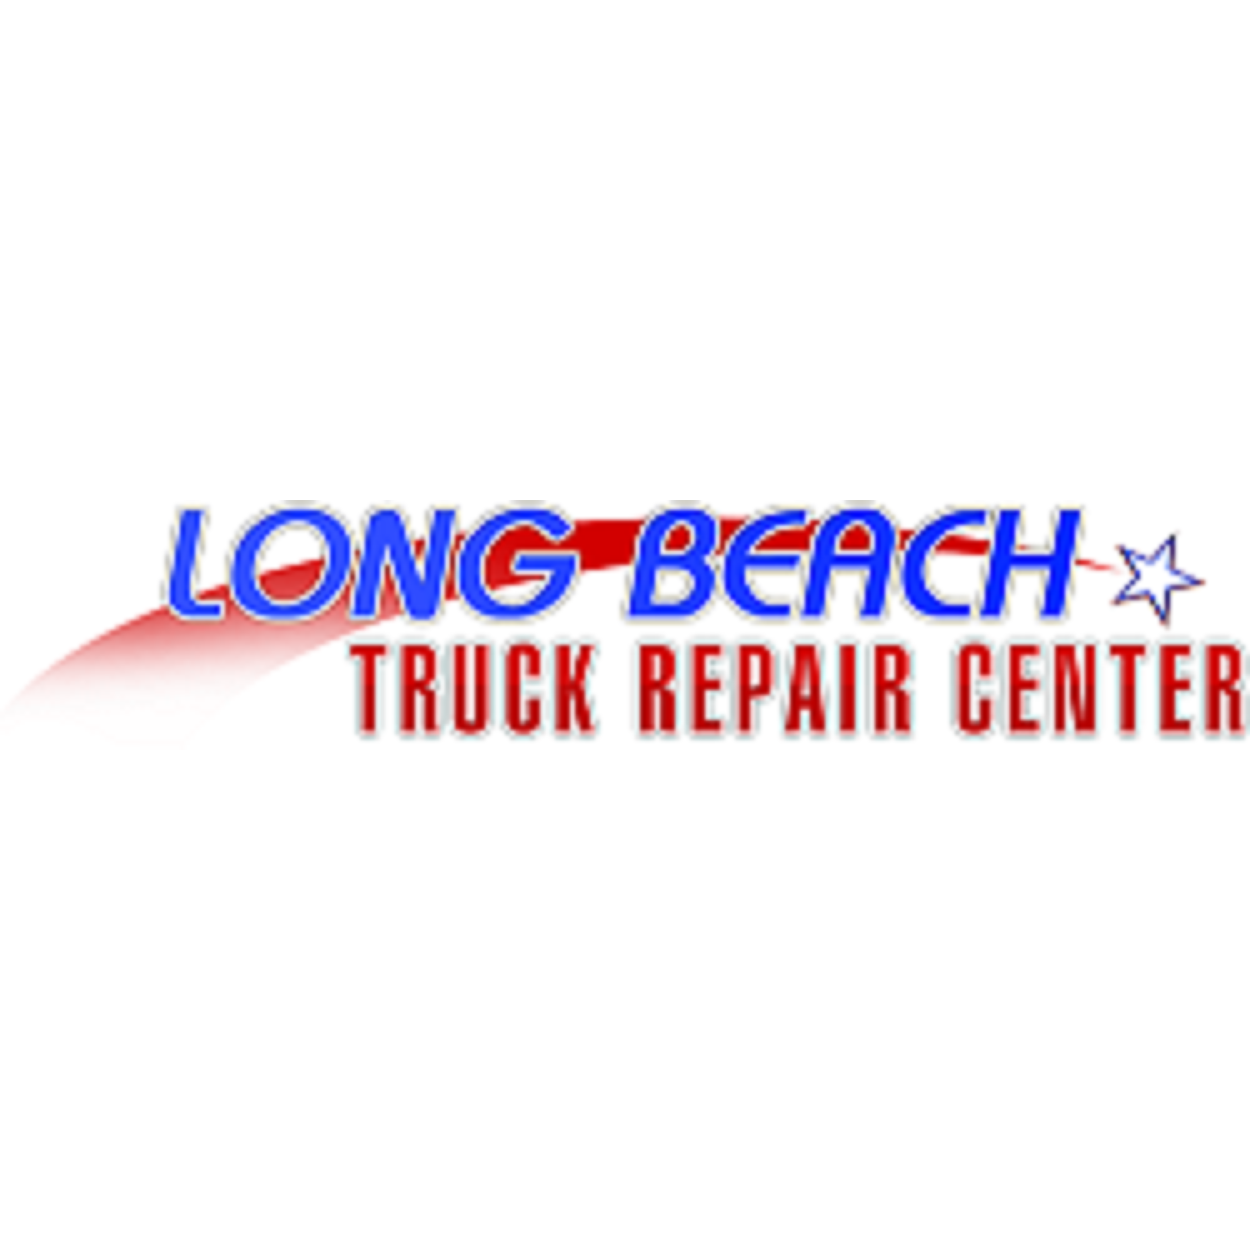 Long Beach Truck Repair Center image 1